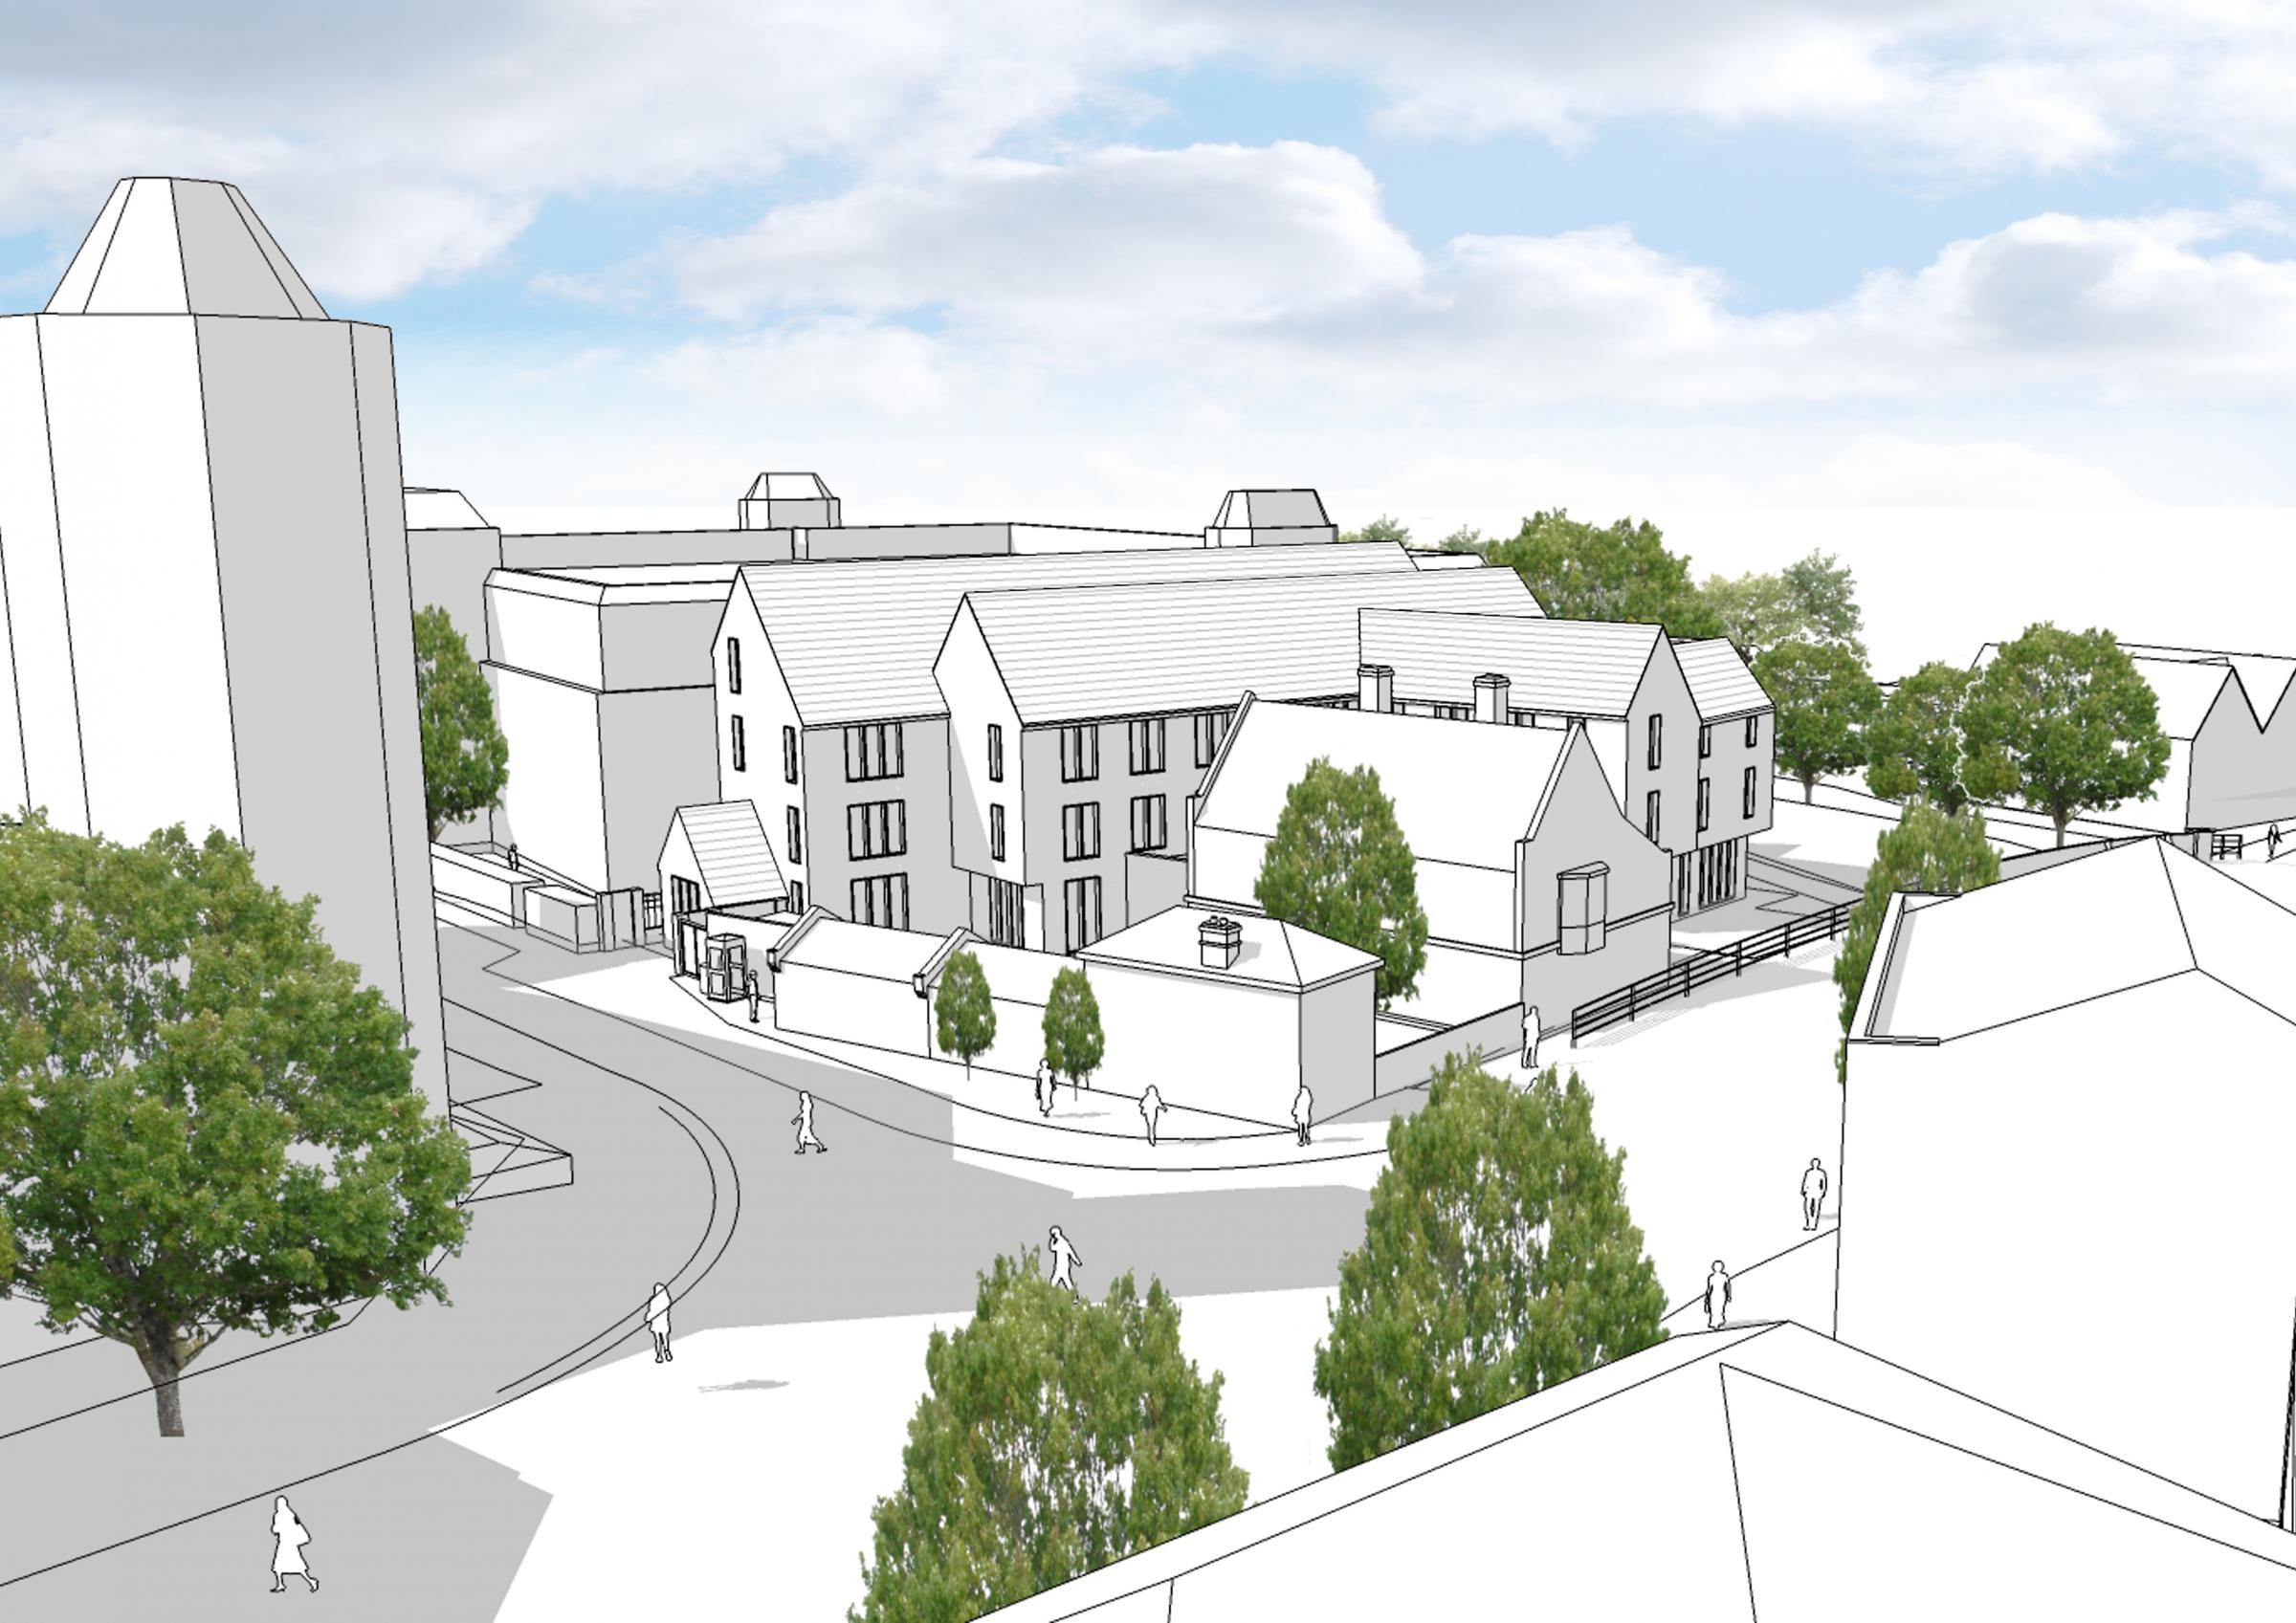 New £5 million hotel plans for Colchester submitted